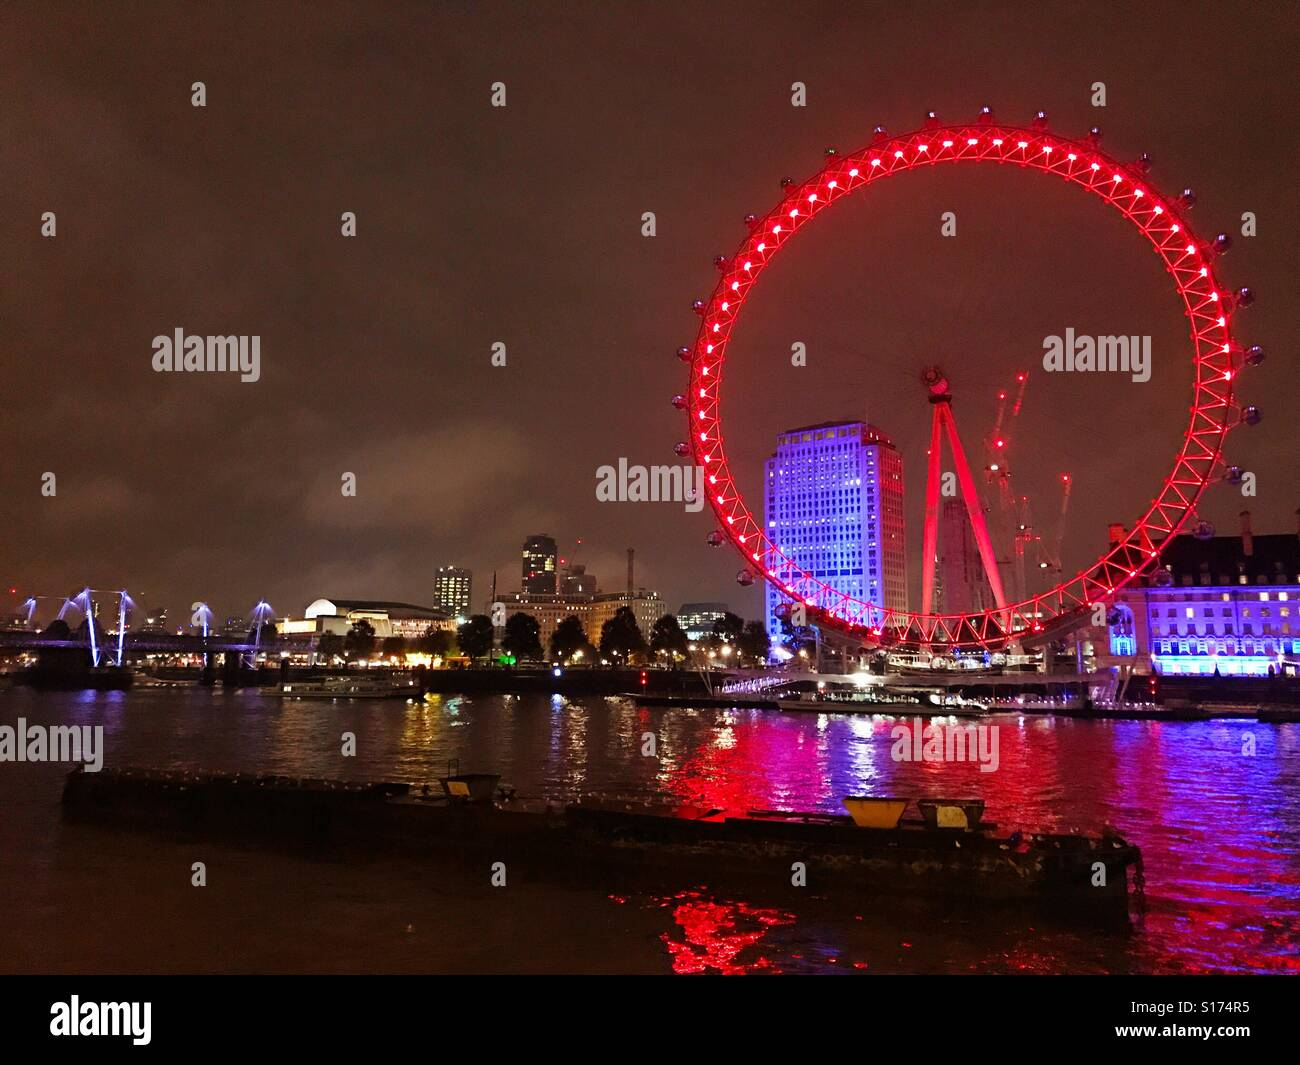 The London Eye lit up at night, from across the River Thames. - Stock Image